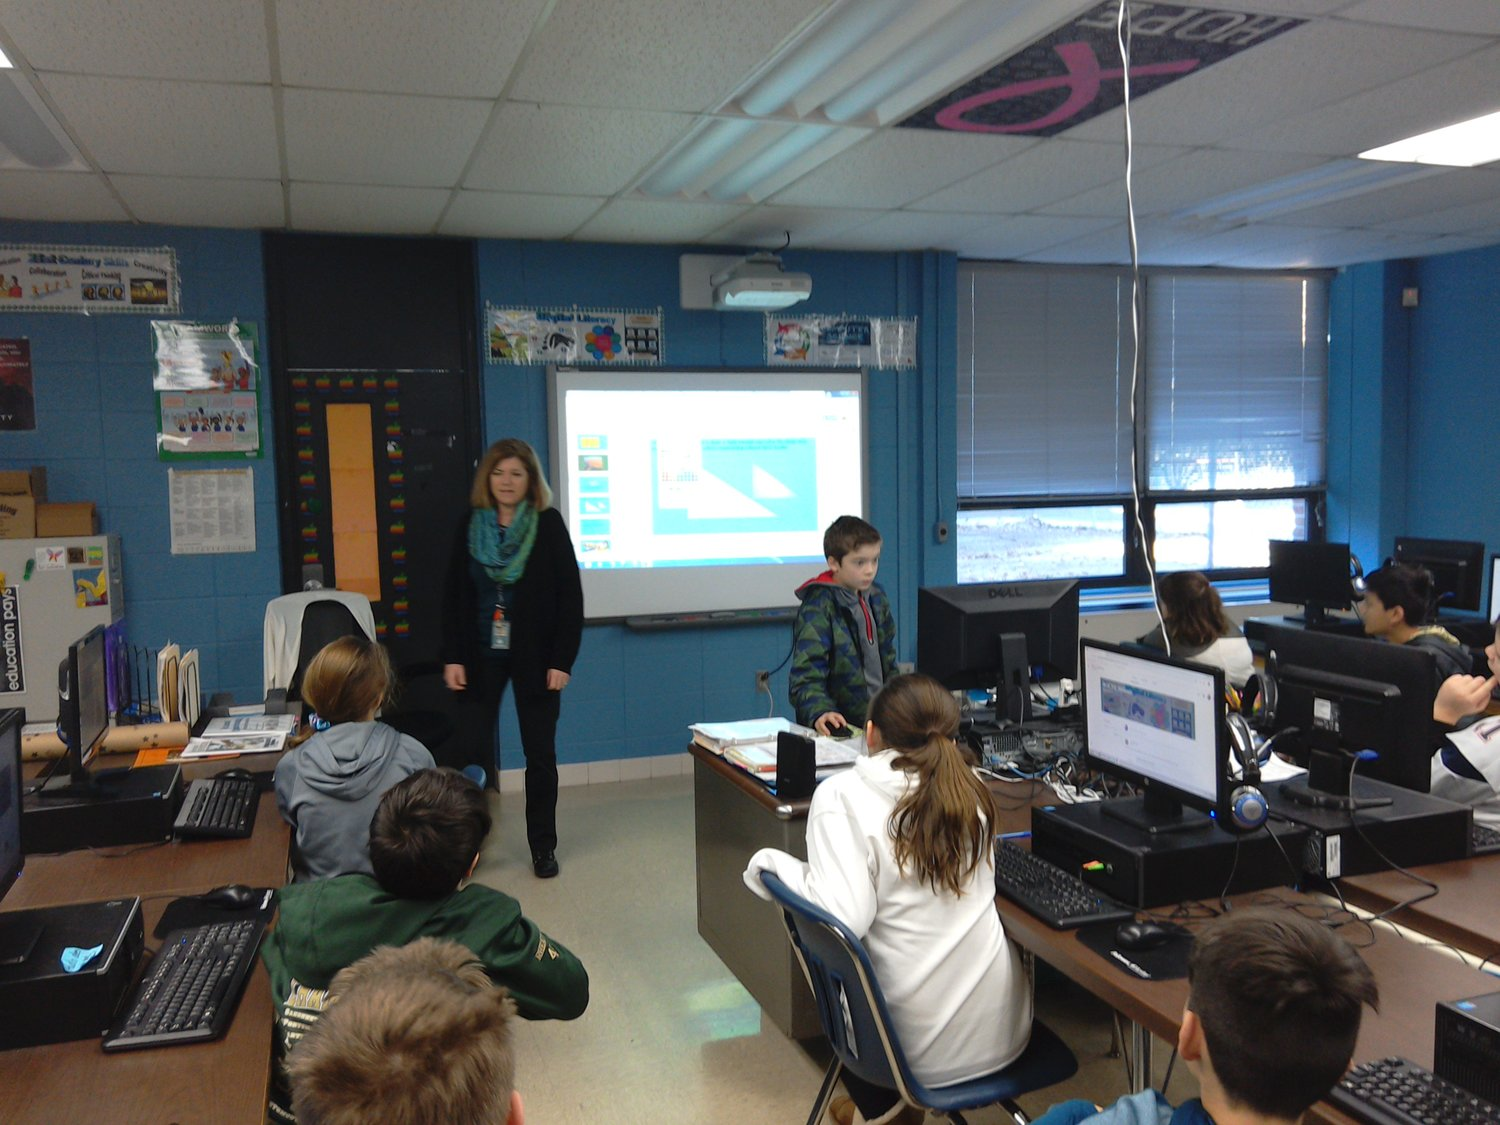 Learning In Action: A 5th grade student demonstrates how to insert a shape in a Google Slides presentation in Ms Darmody's Computer Science class.